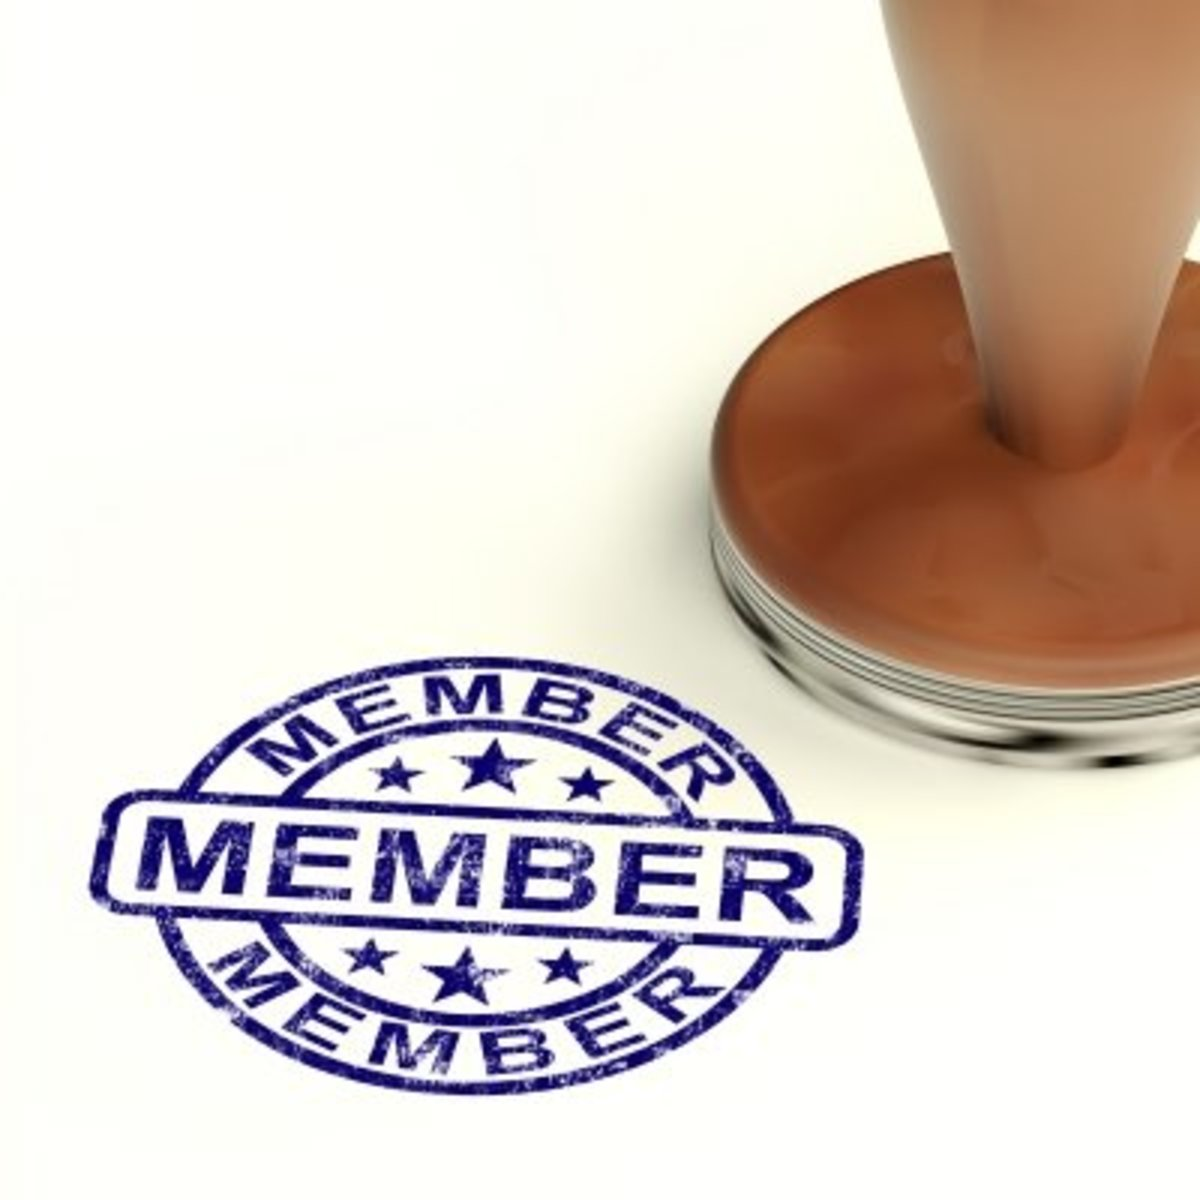 Sign up for a membership with a political party